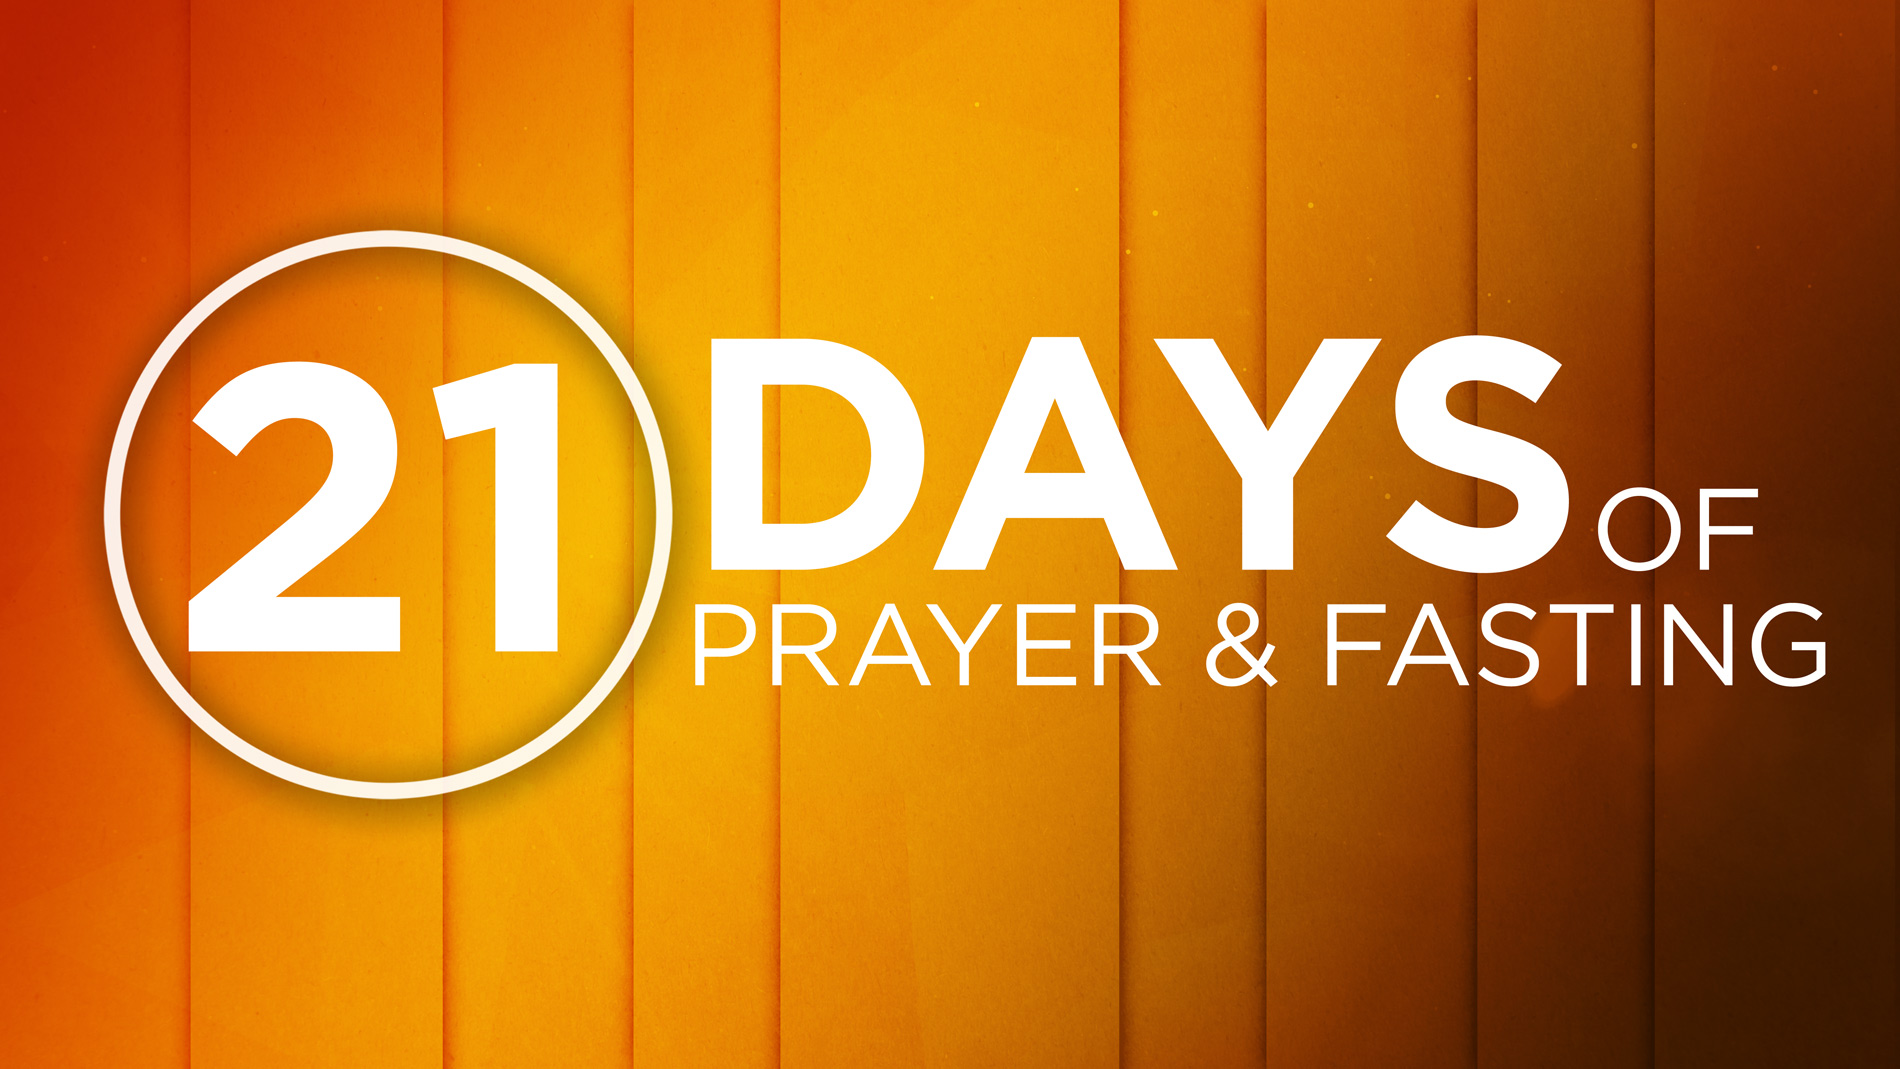 21 Days fasting & prayer from July 1st to 21st 2013